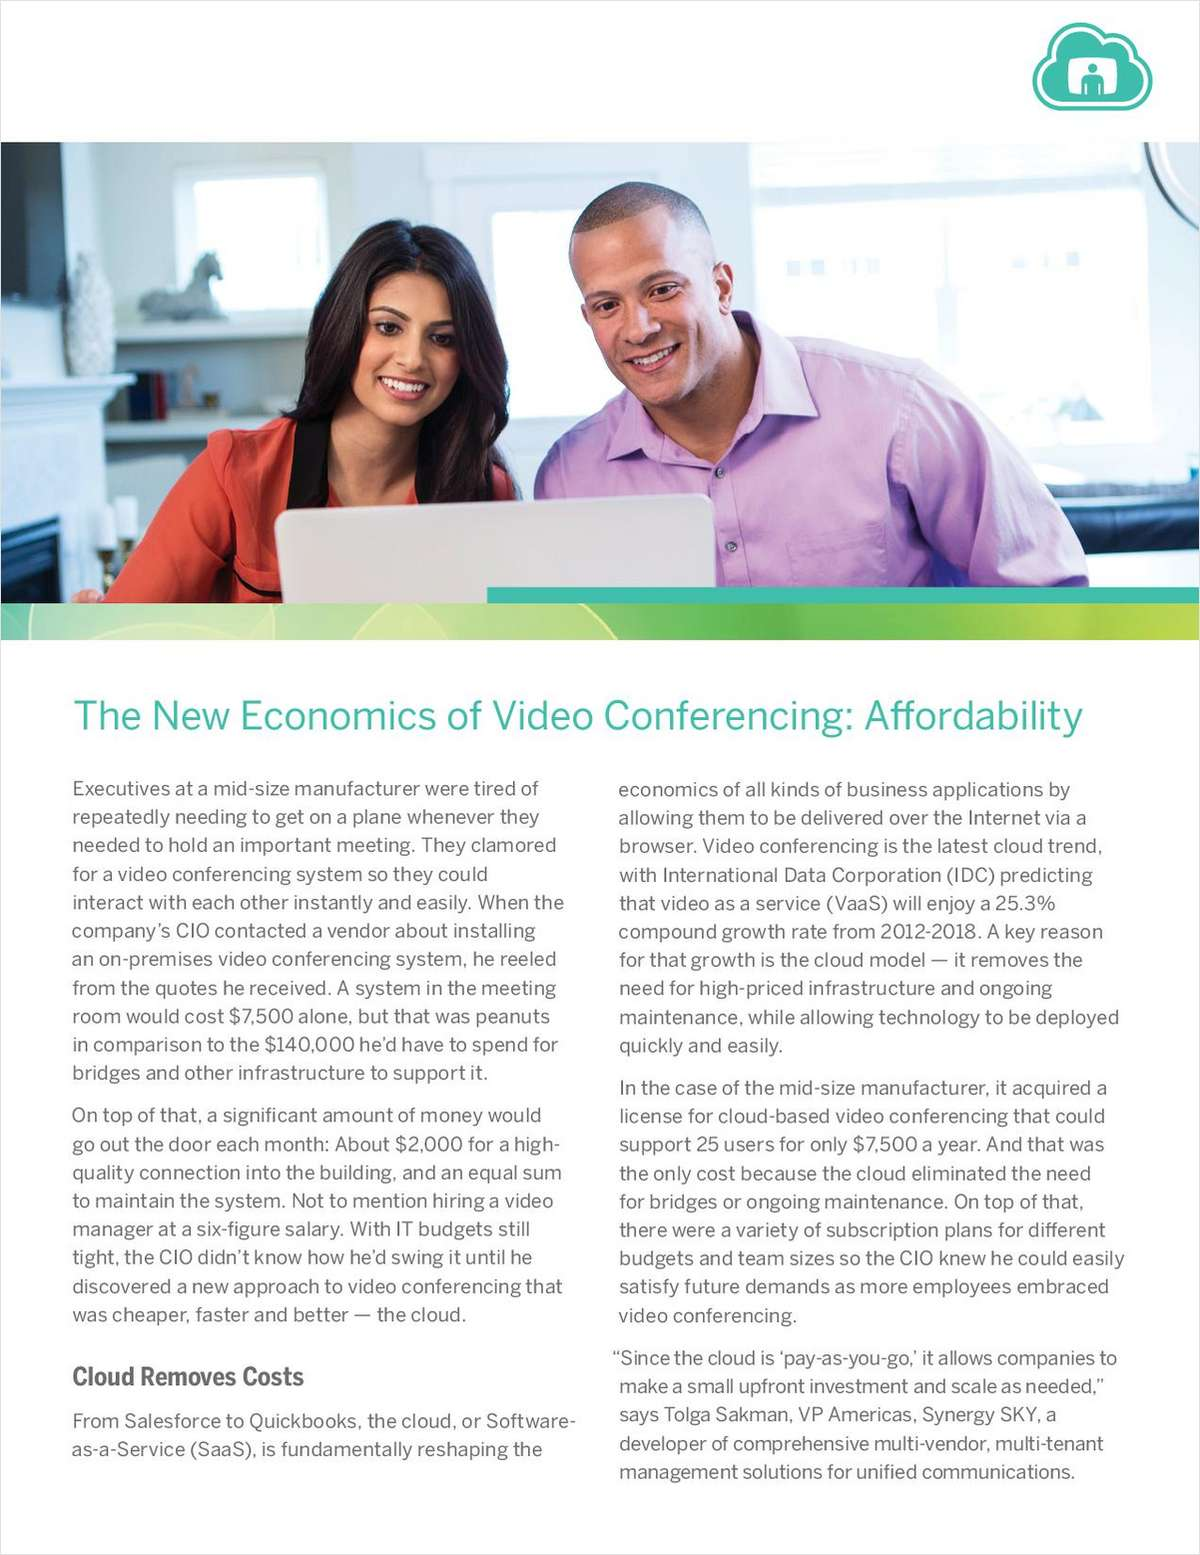 The New Economics of Video Conferencing: Affordability